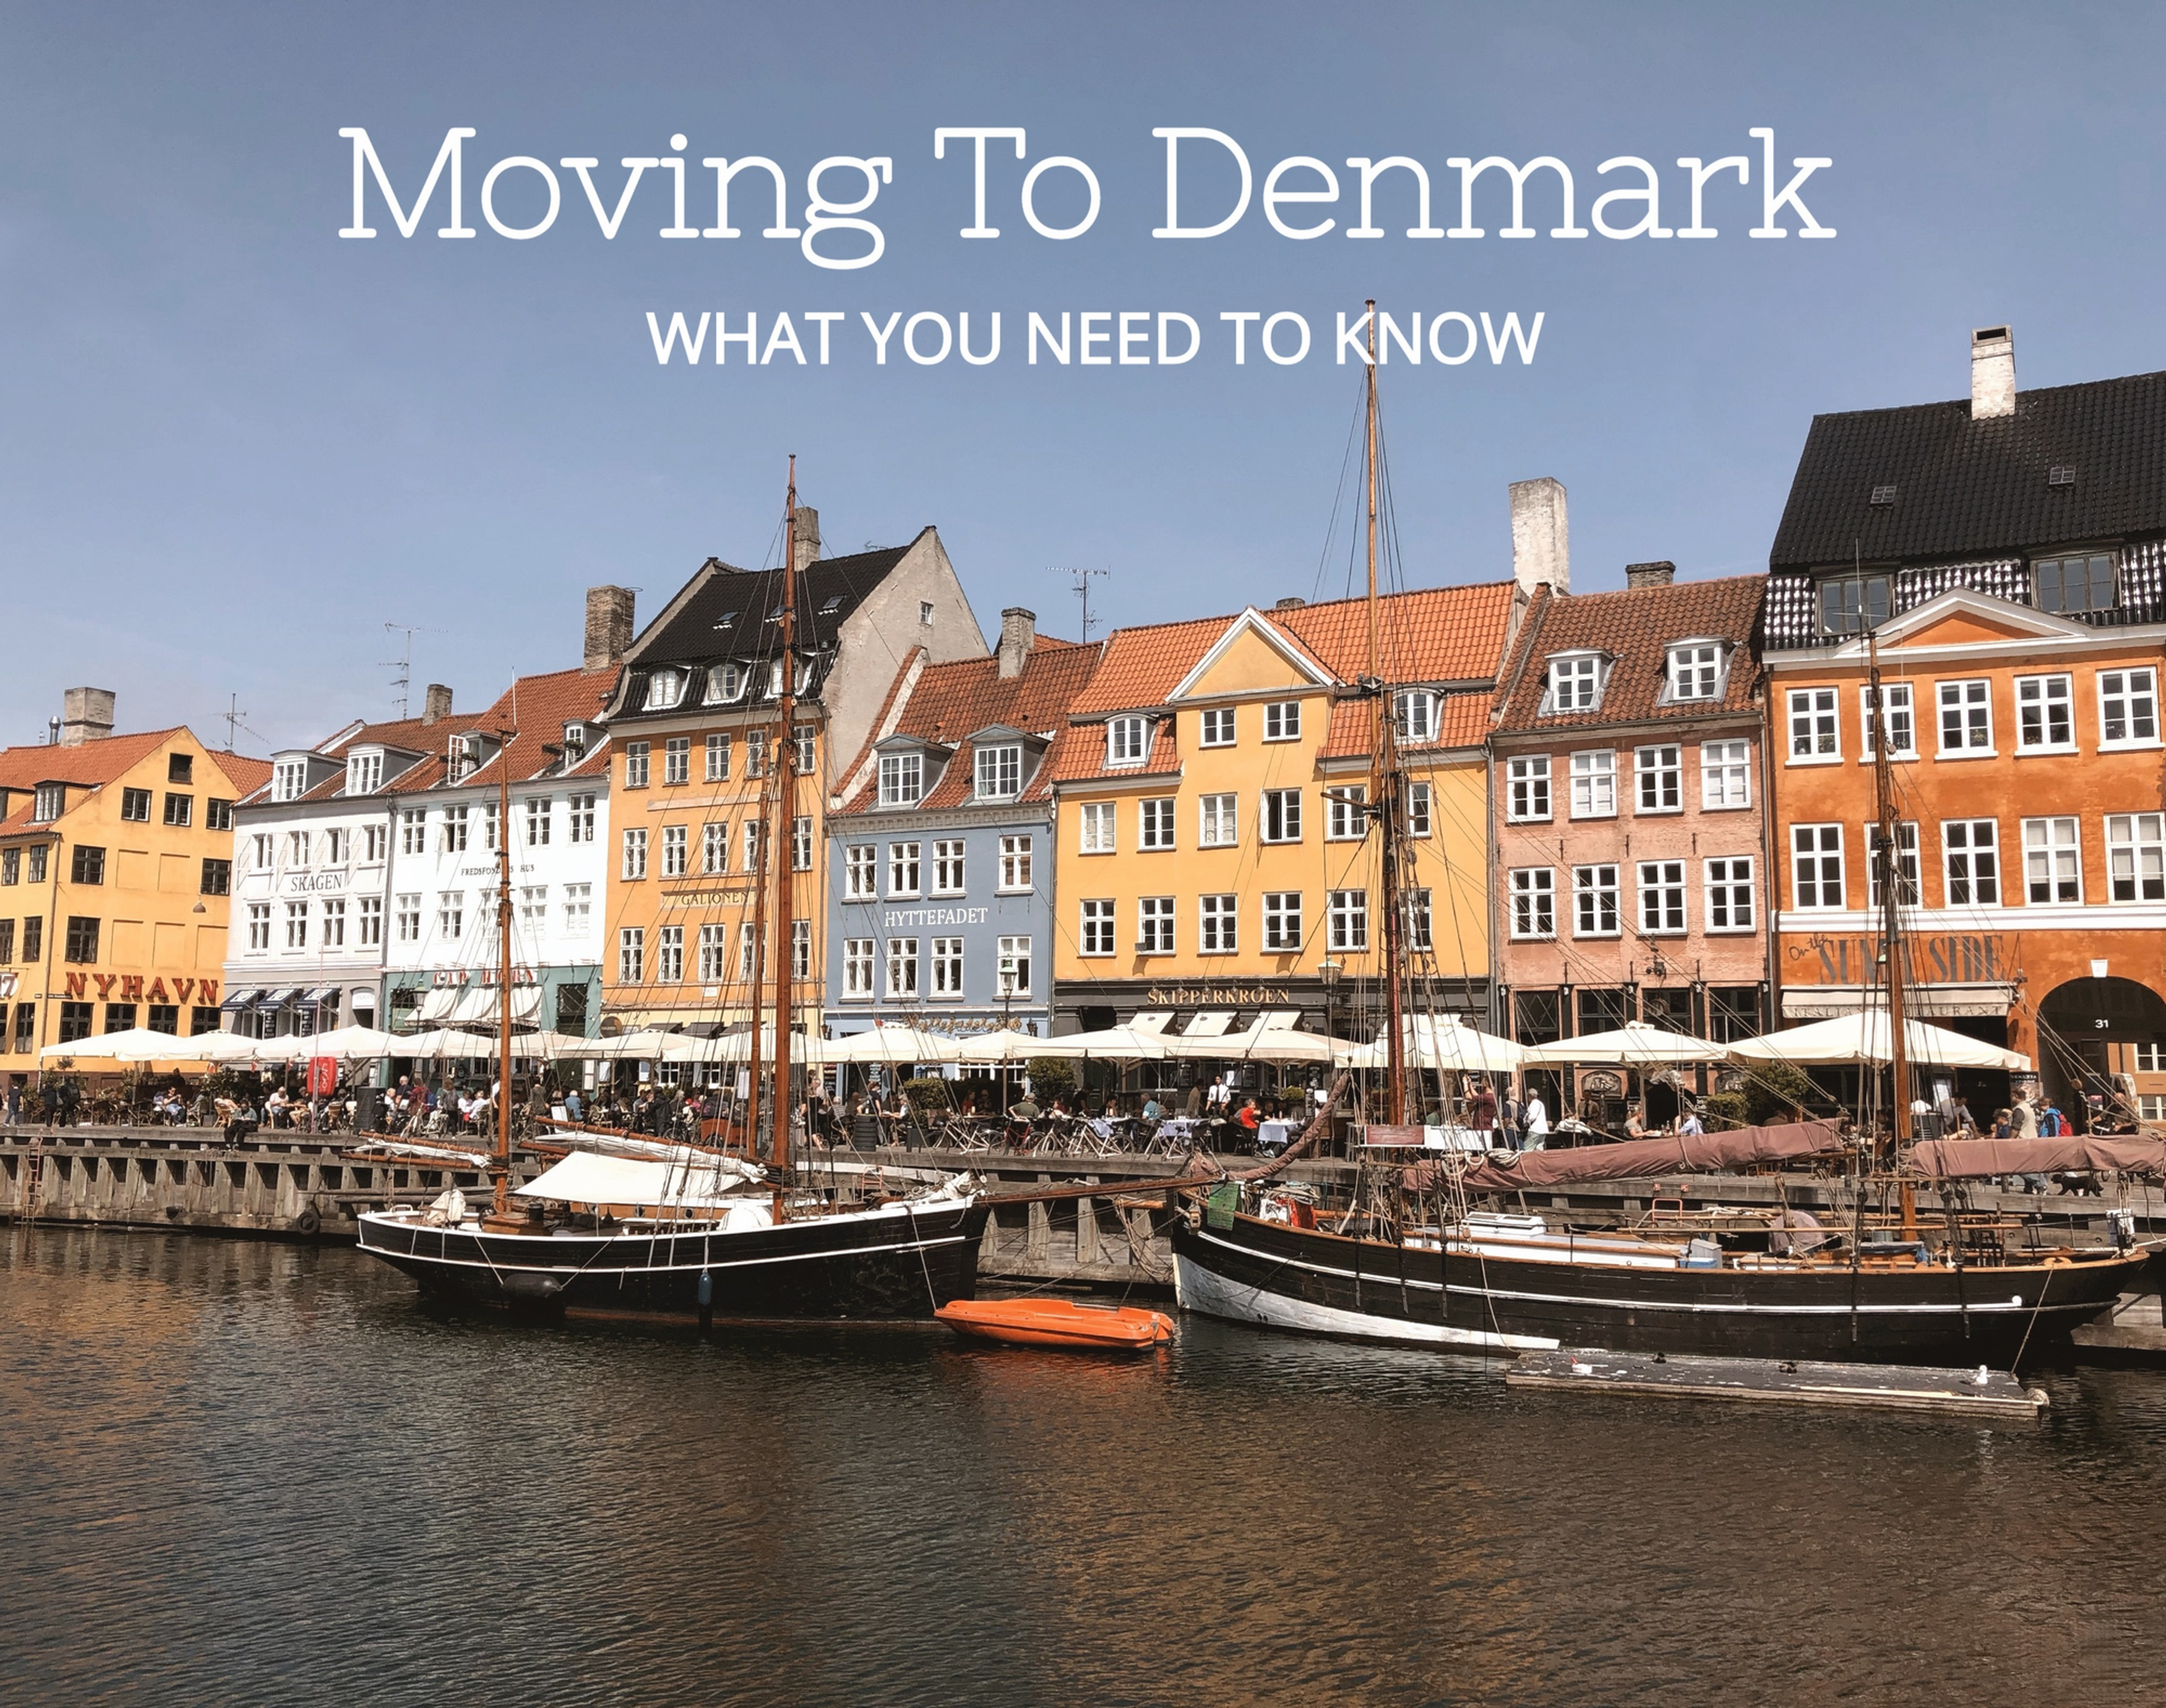 Moving To Denmark What You Need To Know In 2020 Happiest Places To Live Denmark Best Places To Live